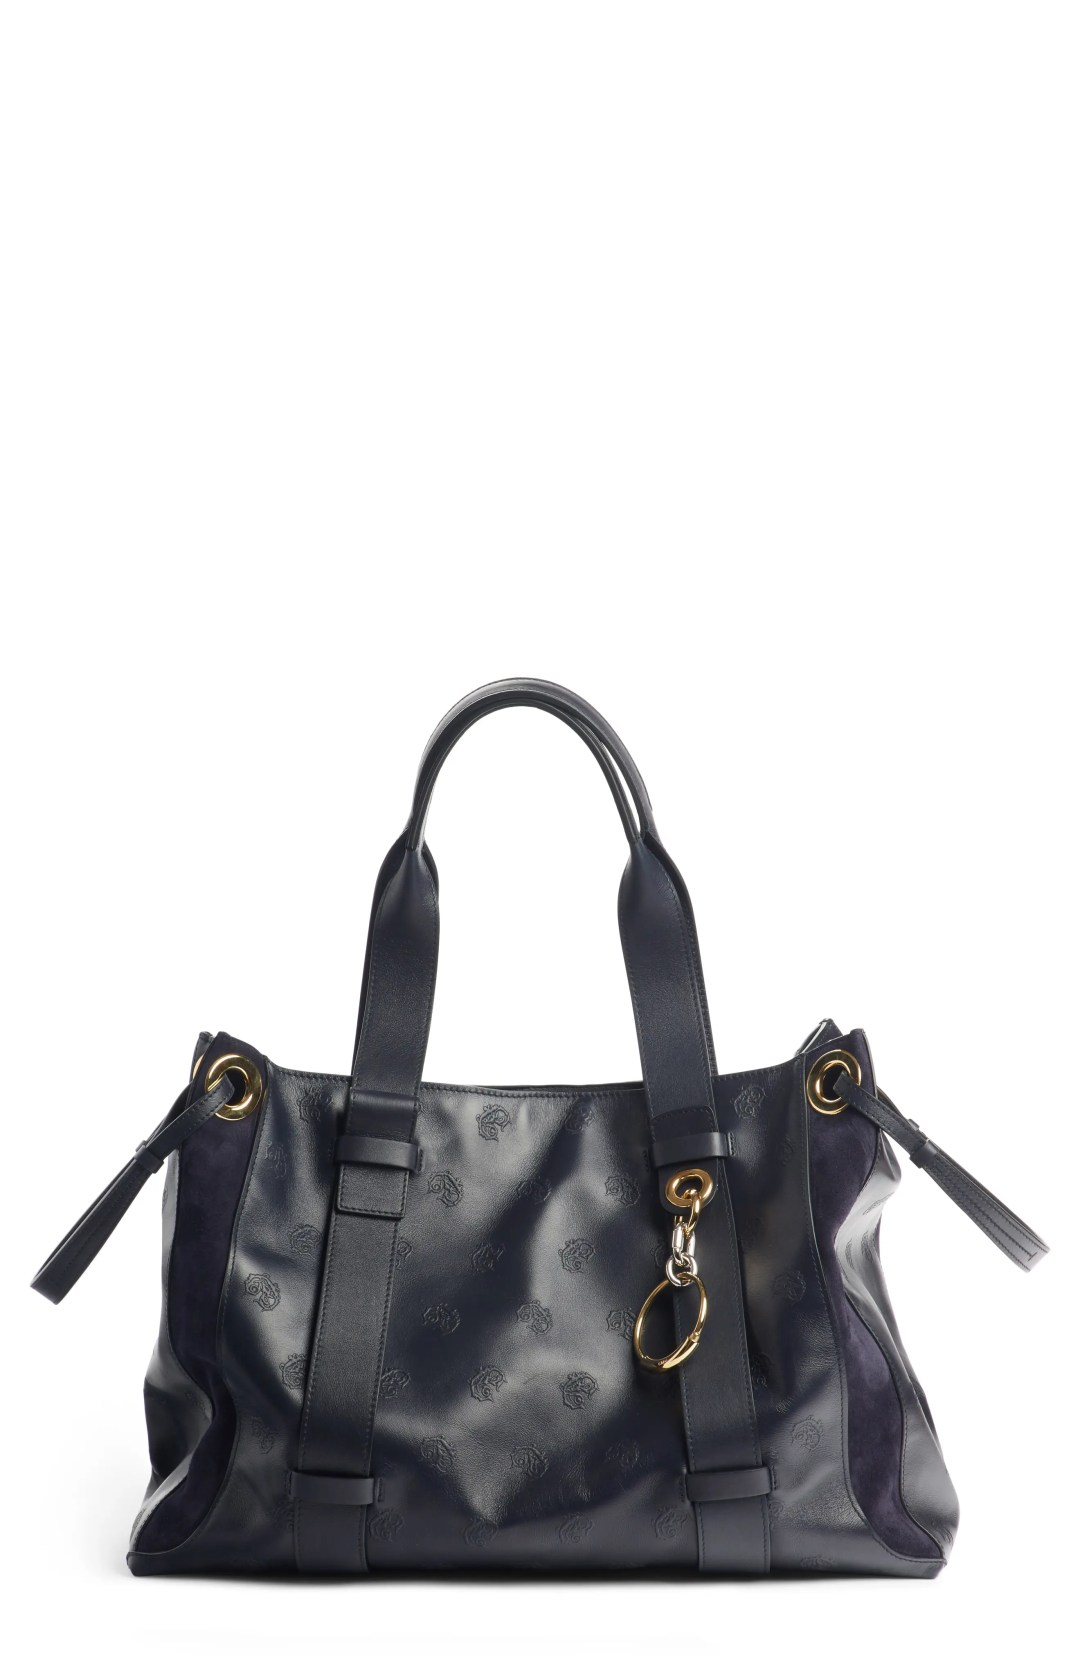 ecaf1eb9f835c Chloé 'Medium Marcie' Leather Satchel